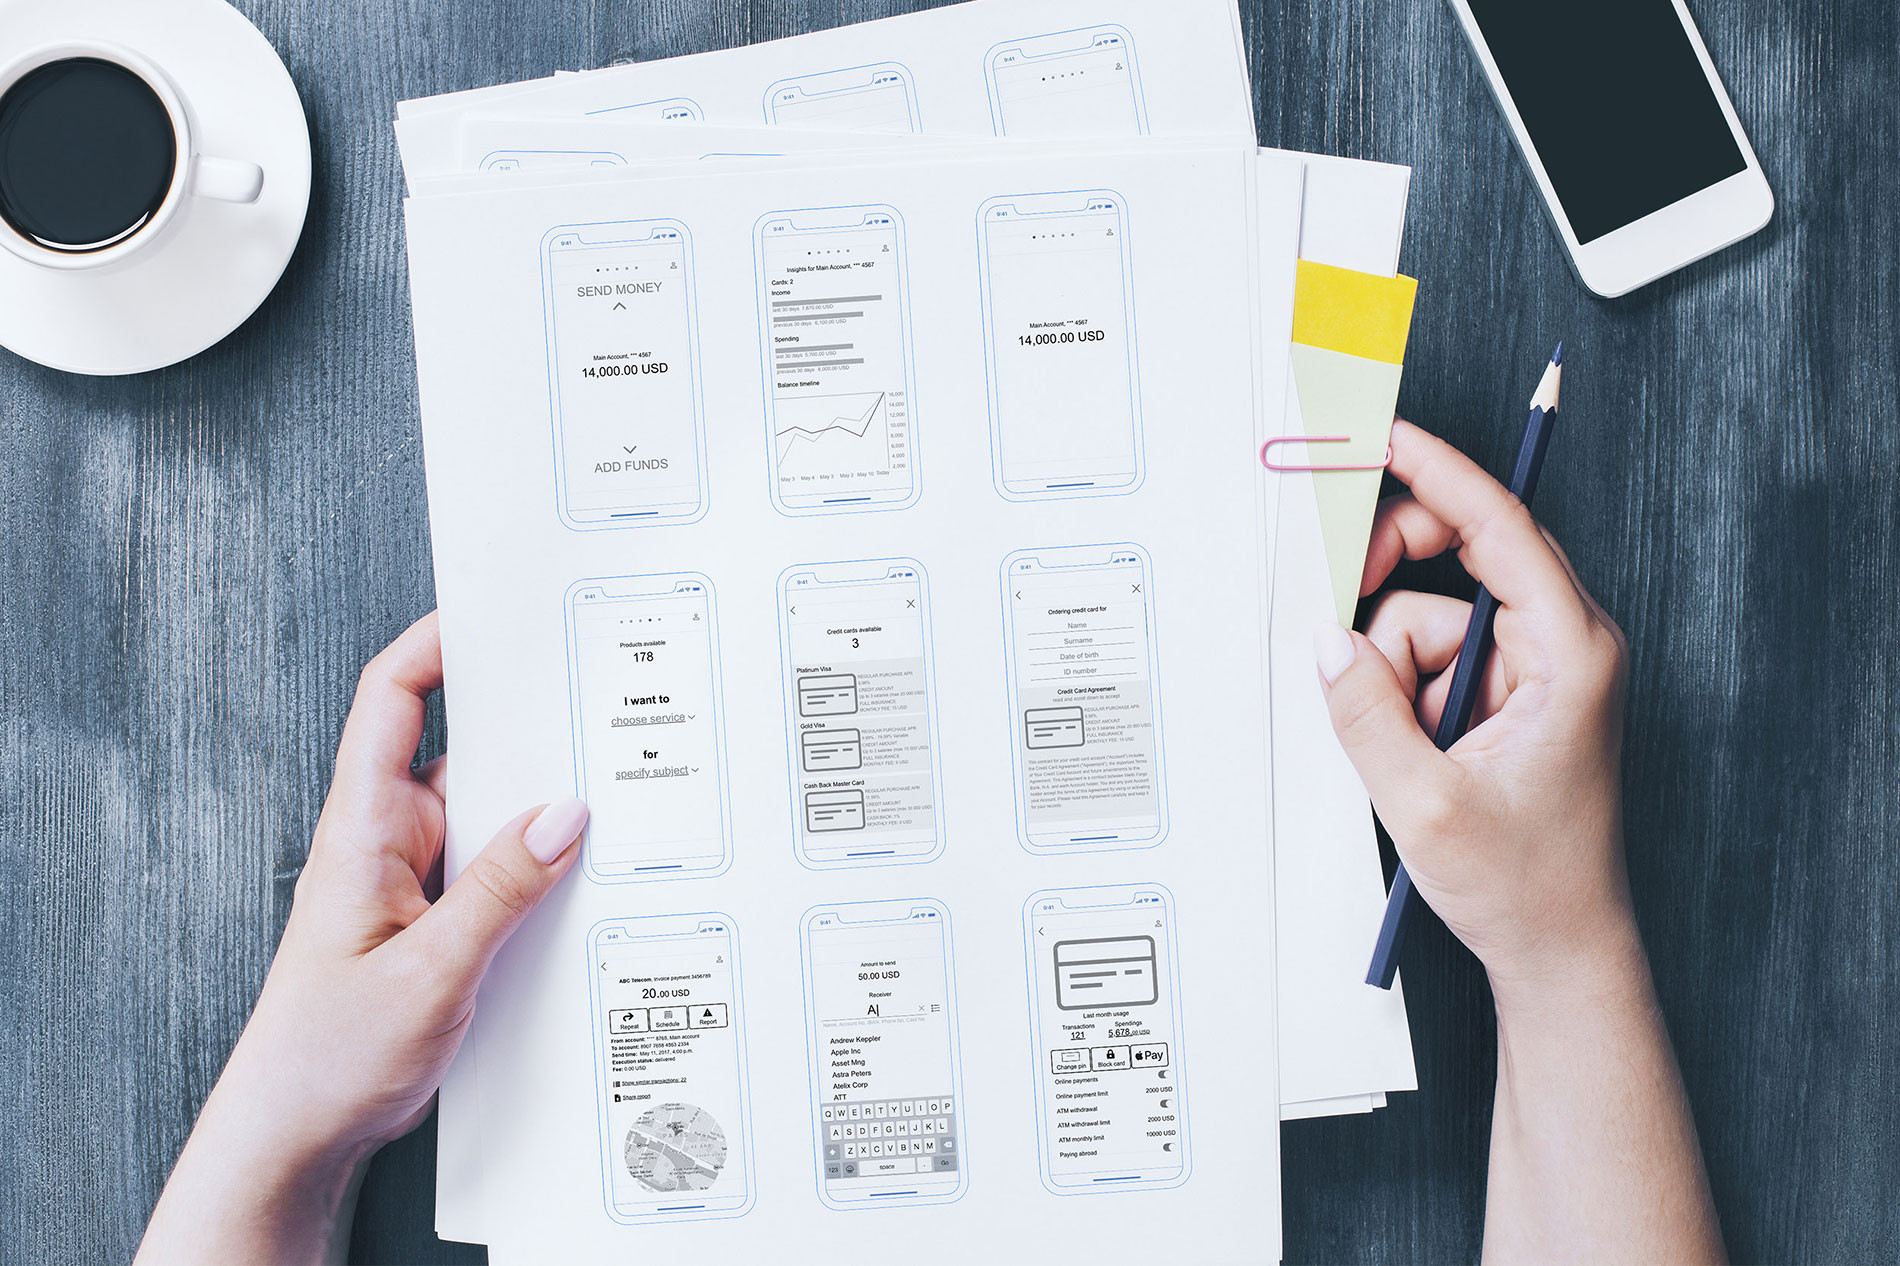 create-wireframes-for-mobile-banking-app-ux